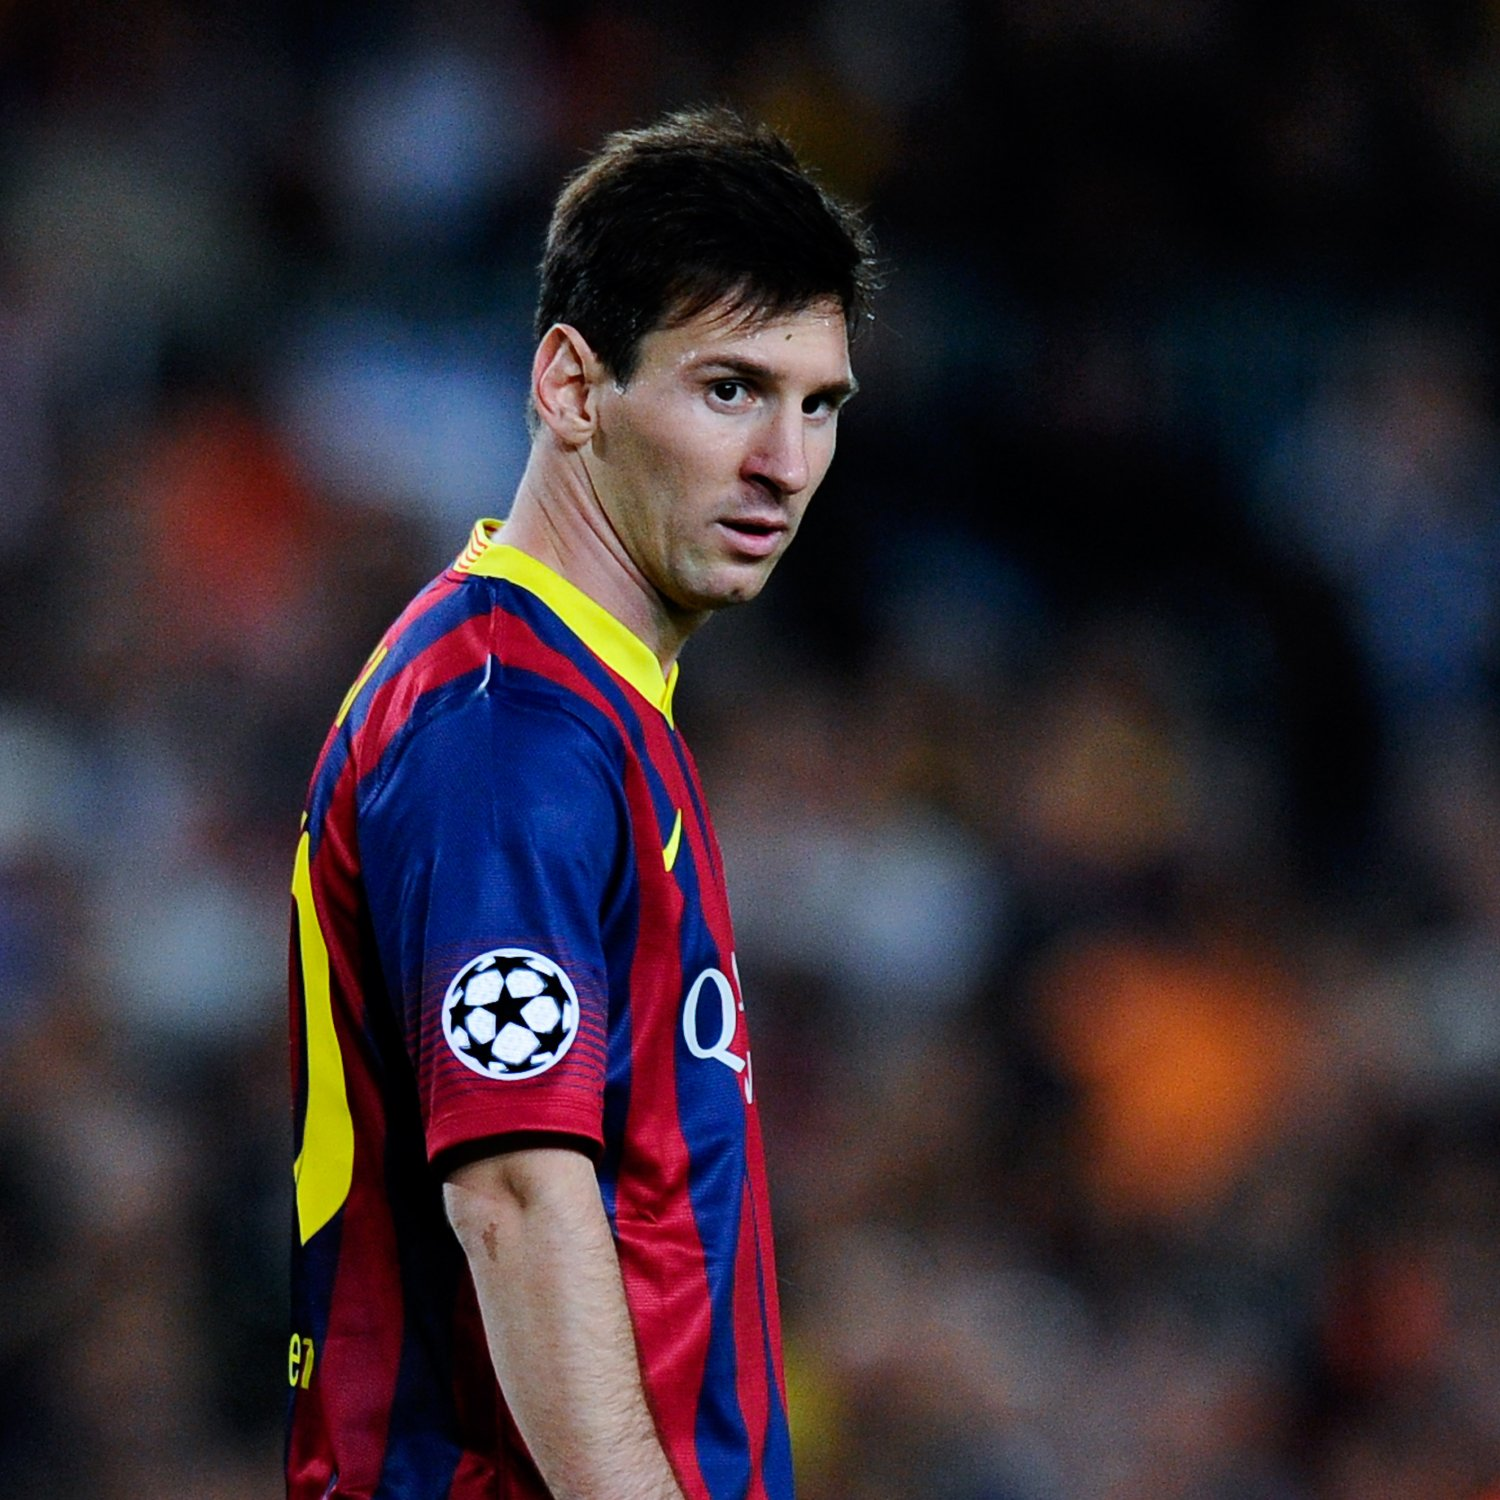 Lionel Messi A Look At The Barcelona Star S Sensational: Why Lionel Messi's Injury Could Be A Blessing In Disguise